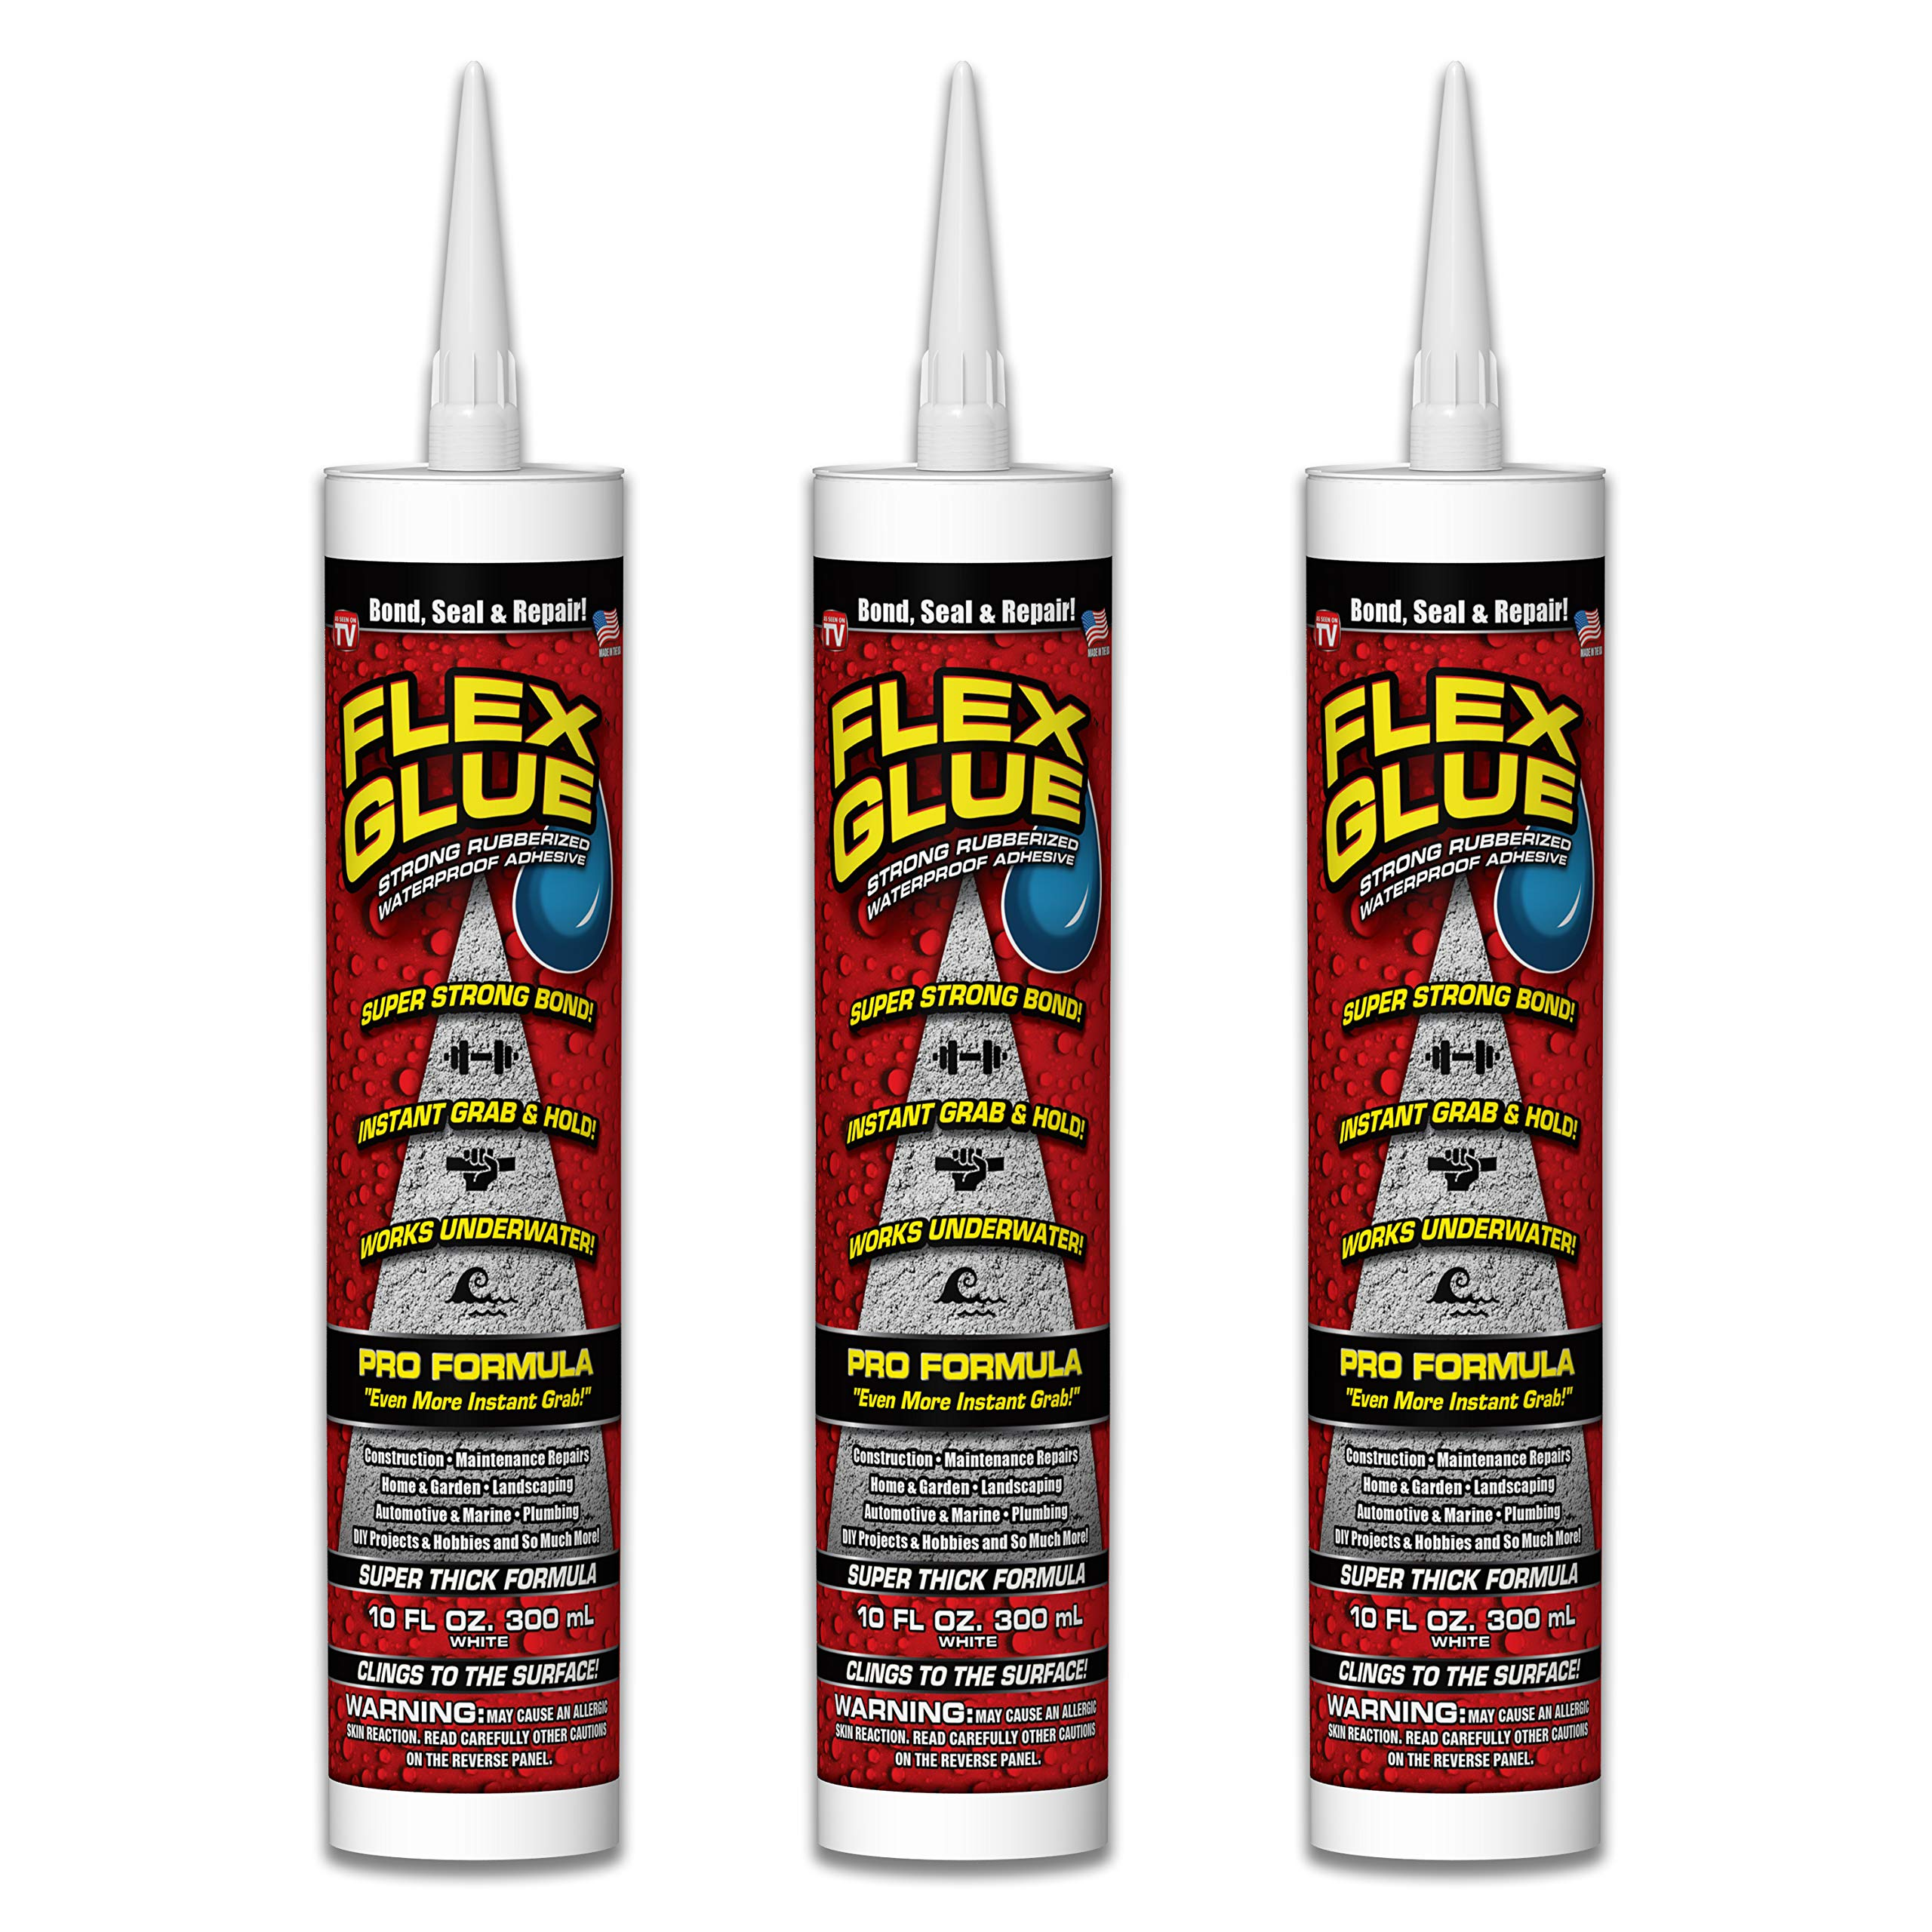 Flex Glue Strong Rubberized Waterproof Adhesive, 10-oz Pro Formula (3 Pack)